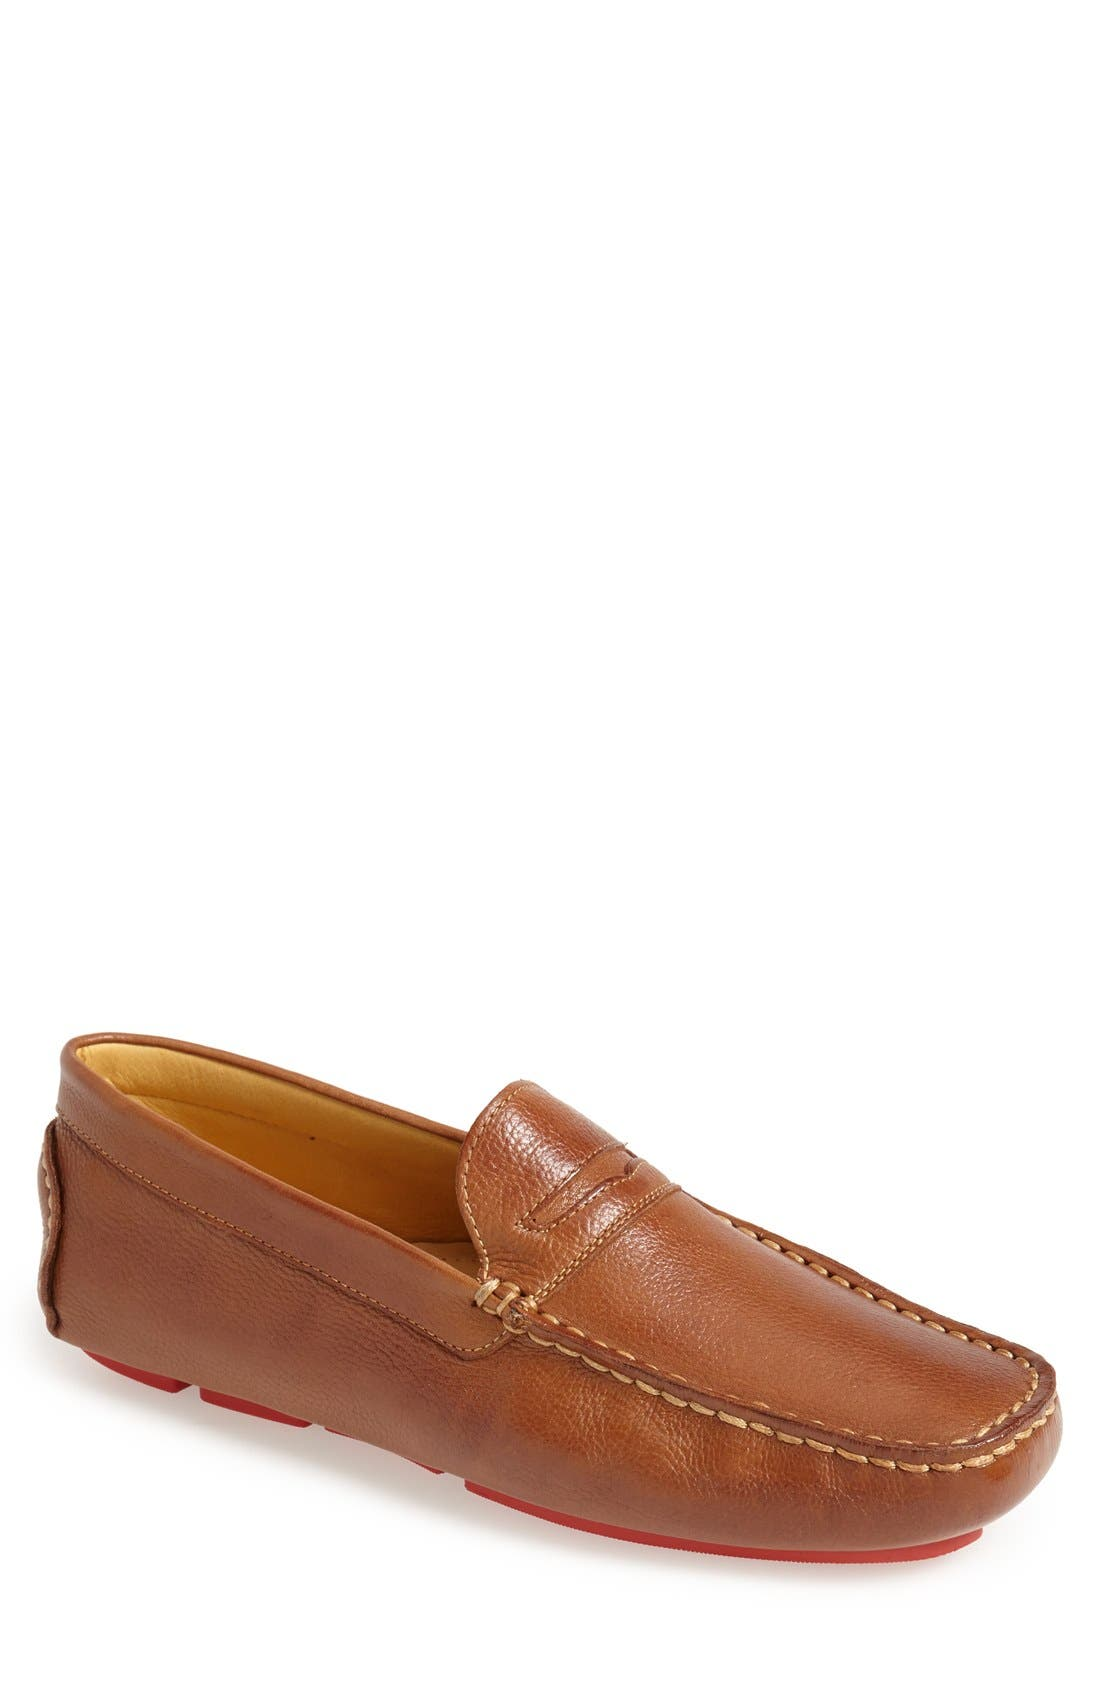 'Santee' Driving Shoe,                         Main,                         color, COGNAC